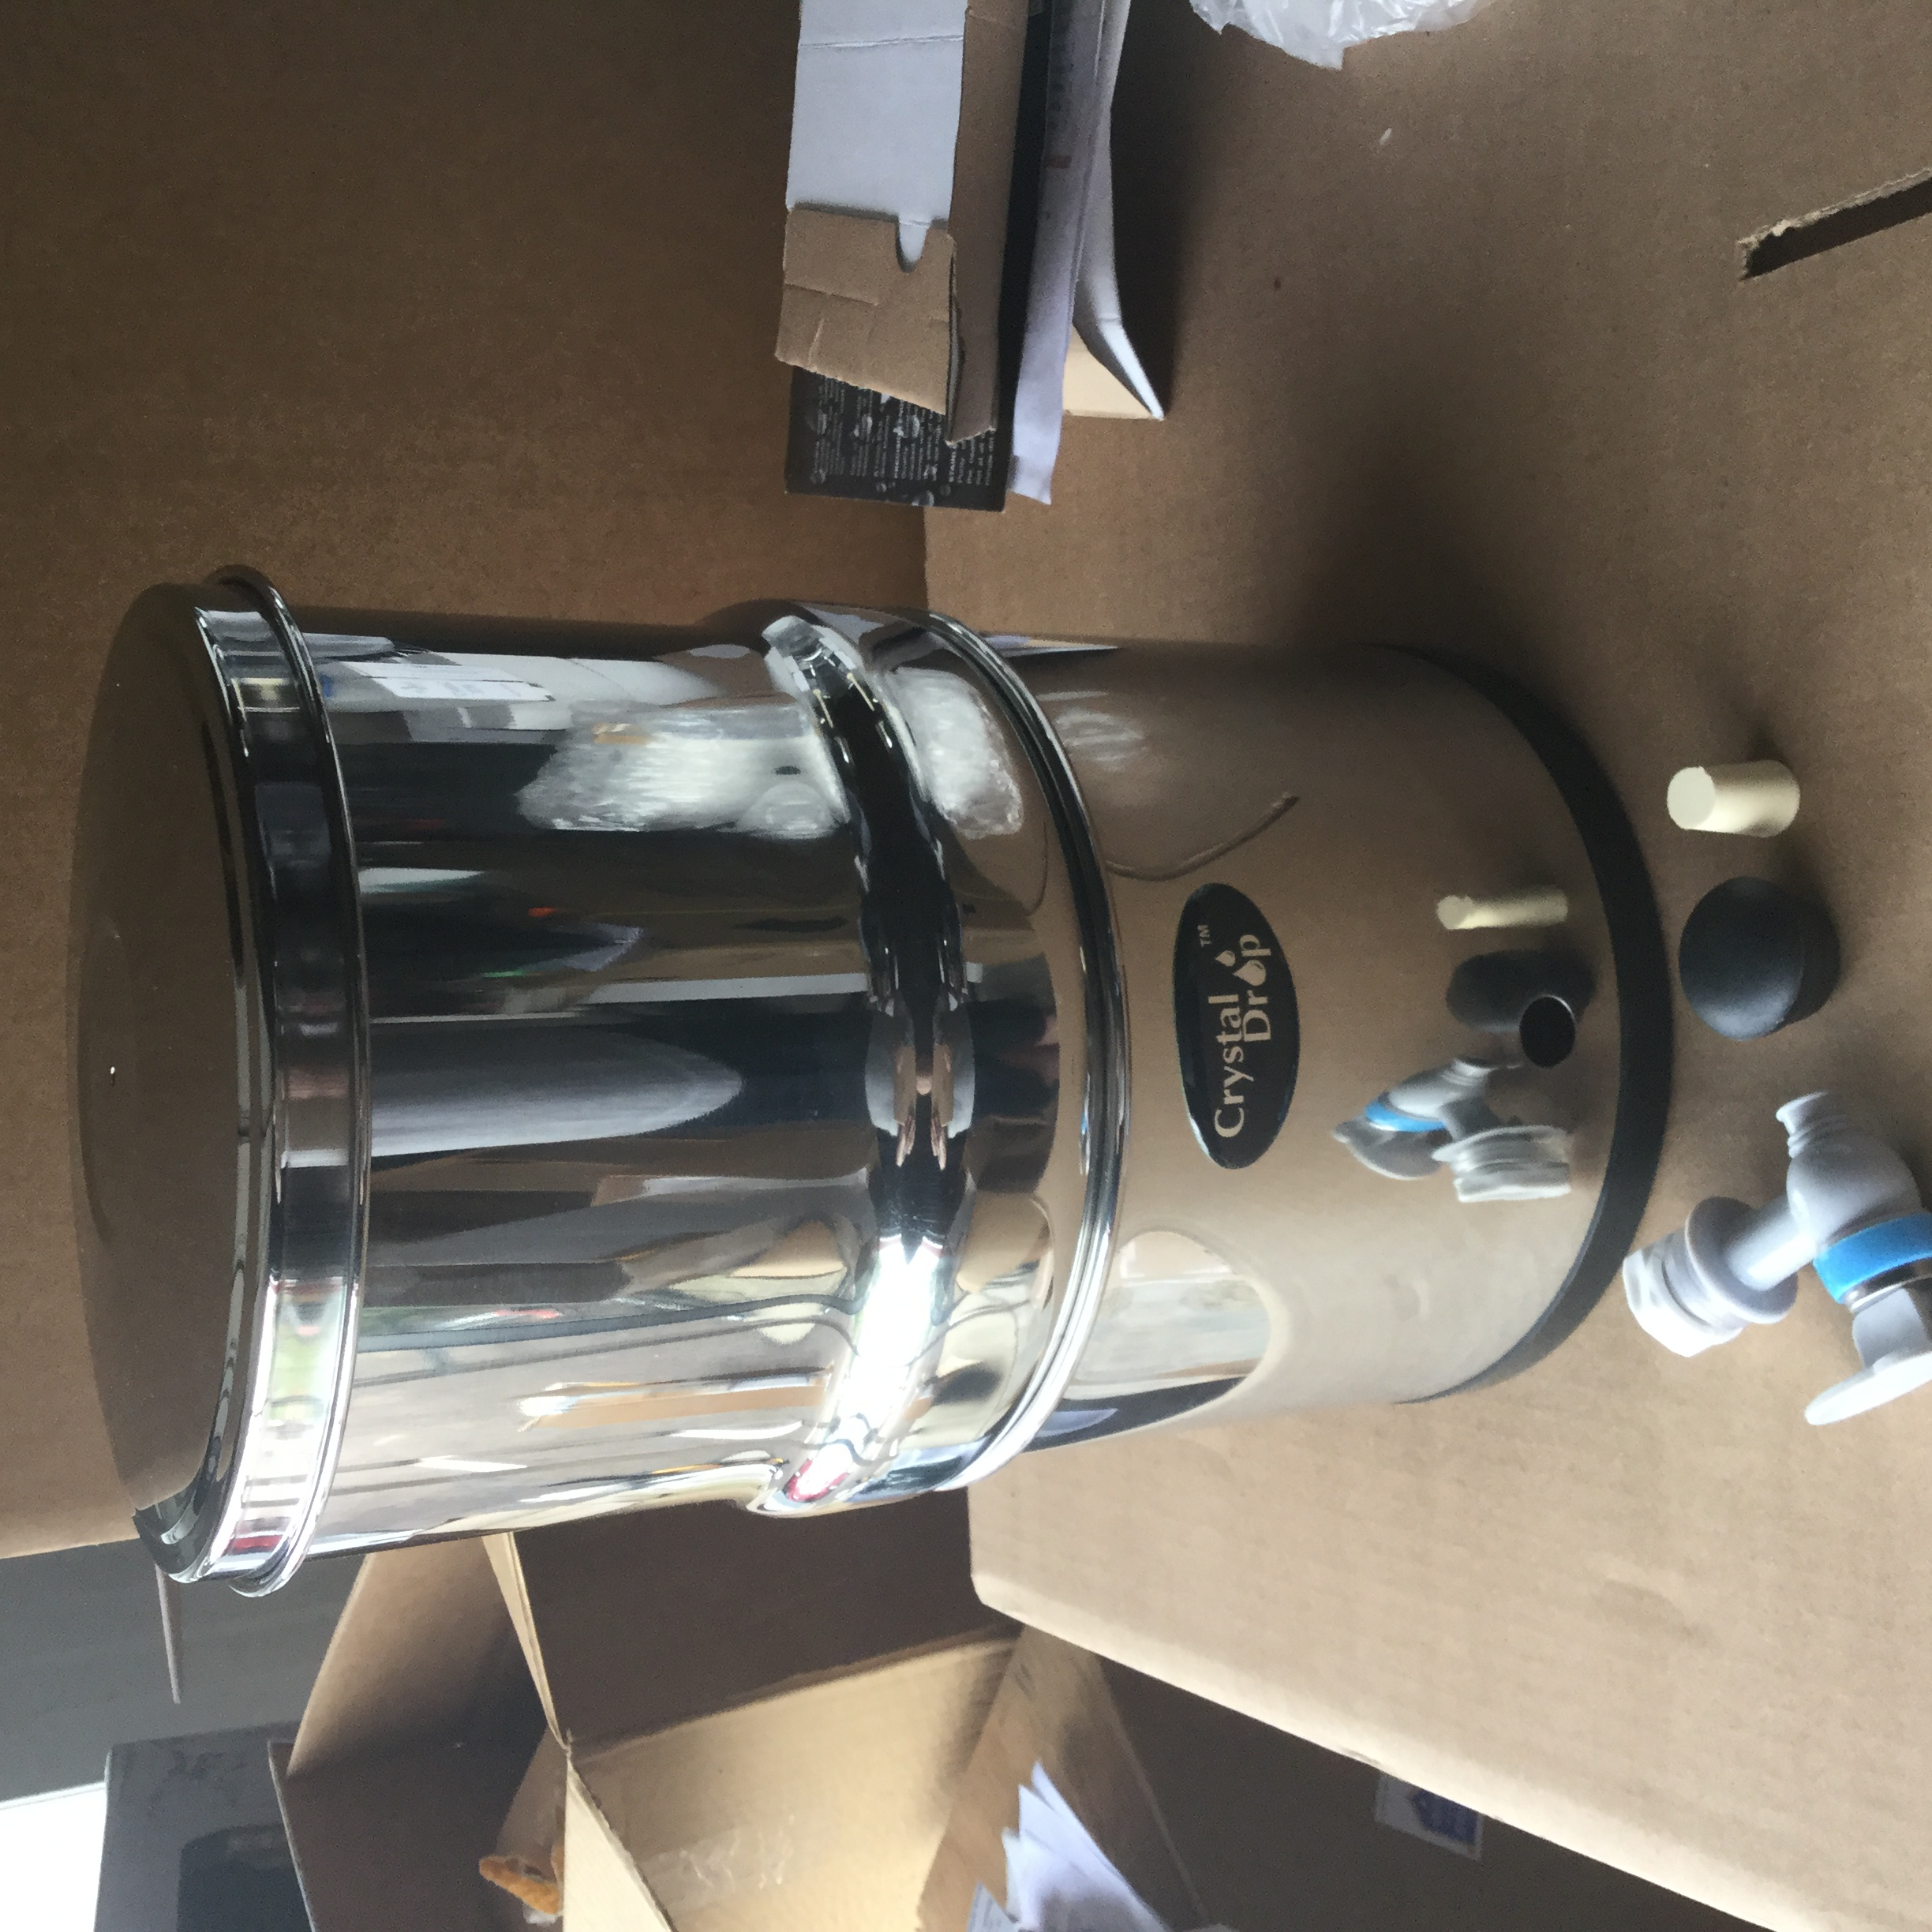 New 1.2 Gallon Stainless Steel Filter Body #202 Stainless